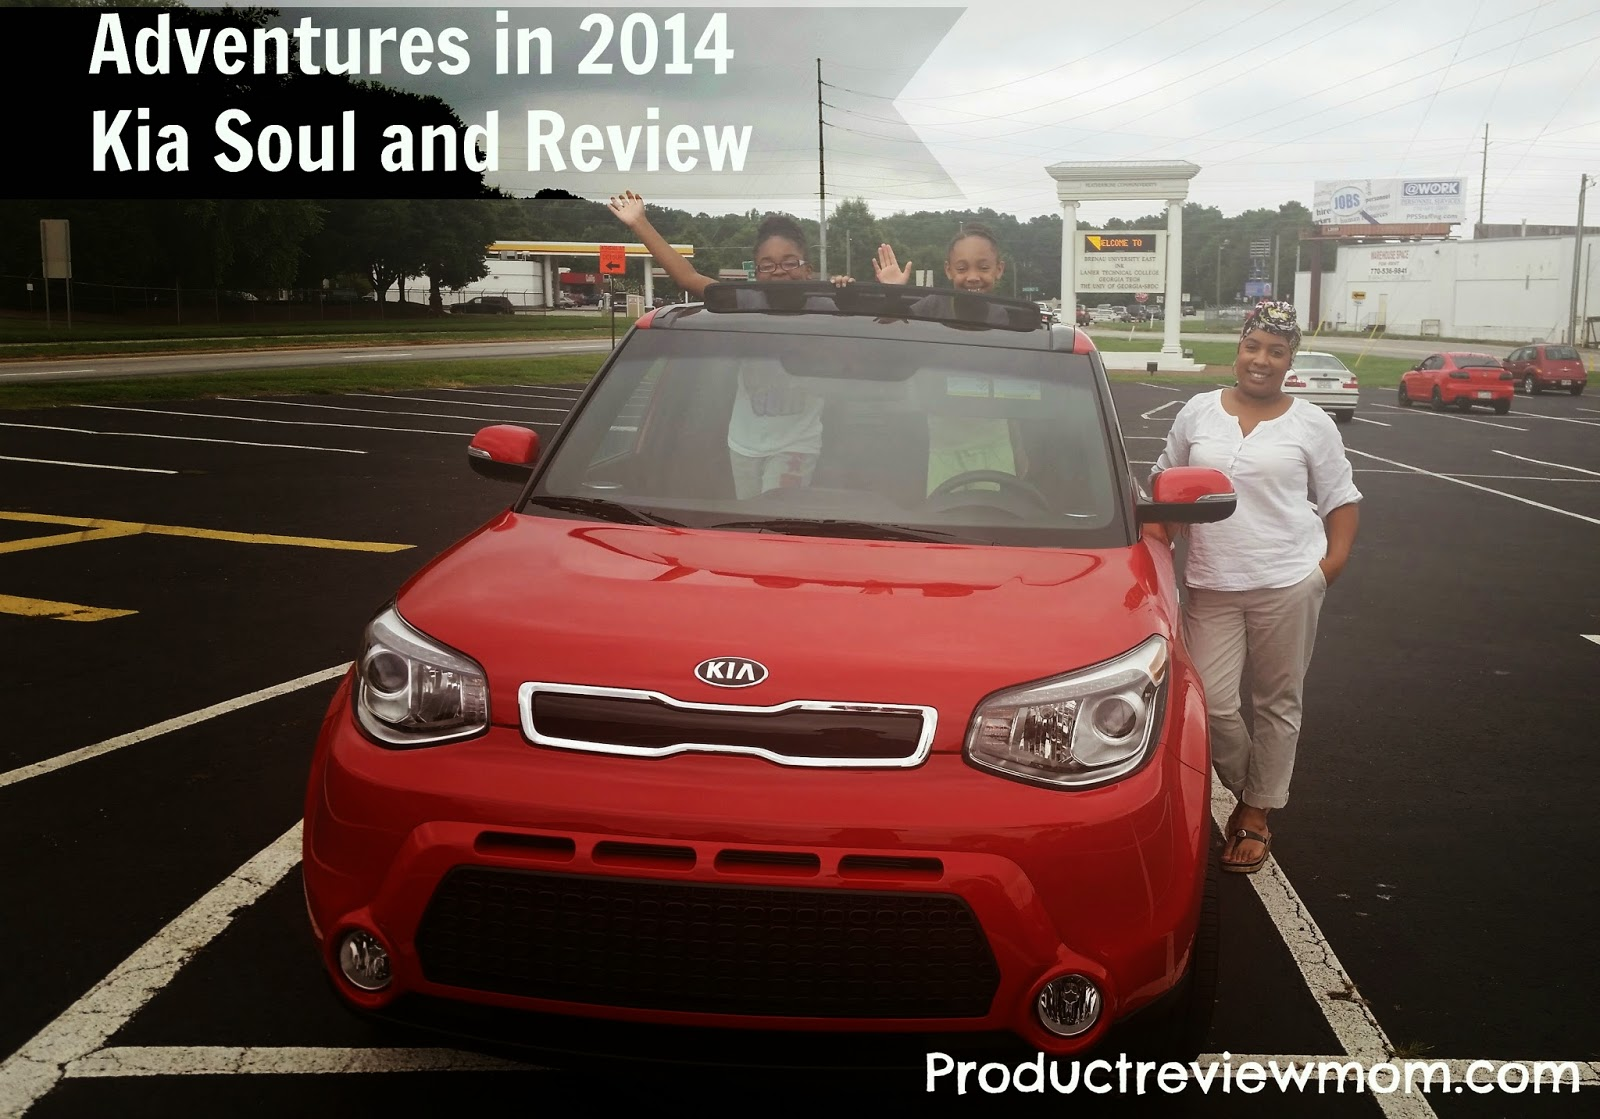 Adventures in 2014 Kia Soul and Review @DriveSTI #KiaSoul via www.Productreviewmom.com